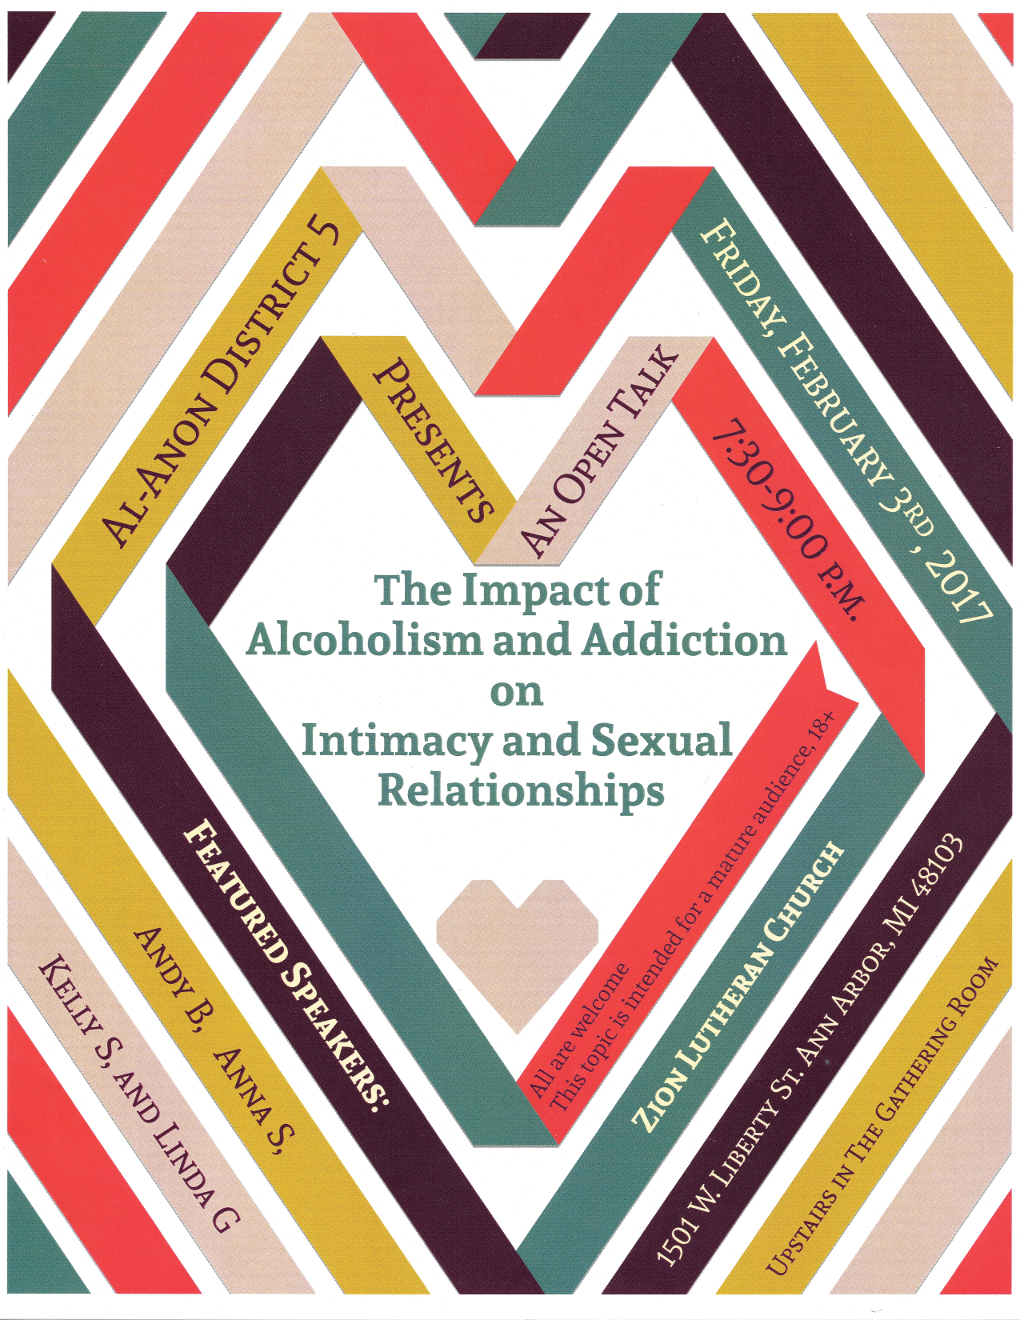 2017-02-03 The Impact of Alcoholism and Addiction on Intimacy and Sexual Relationships